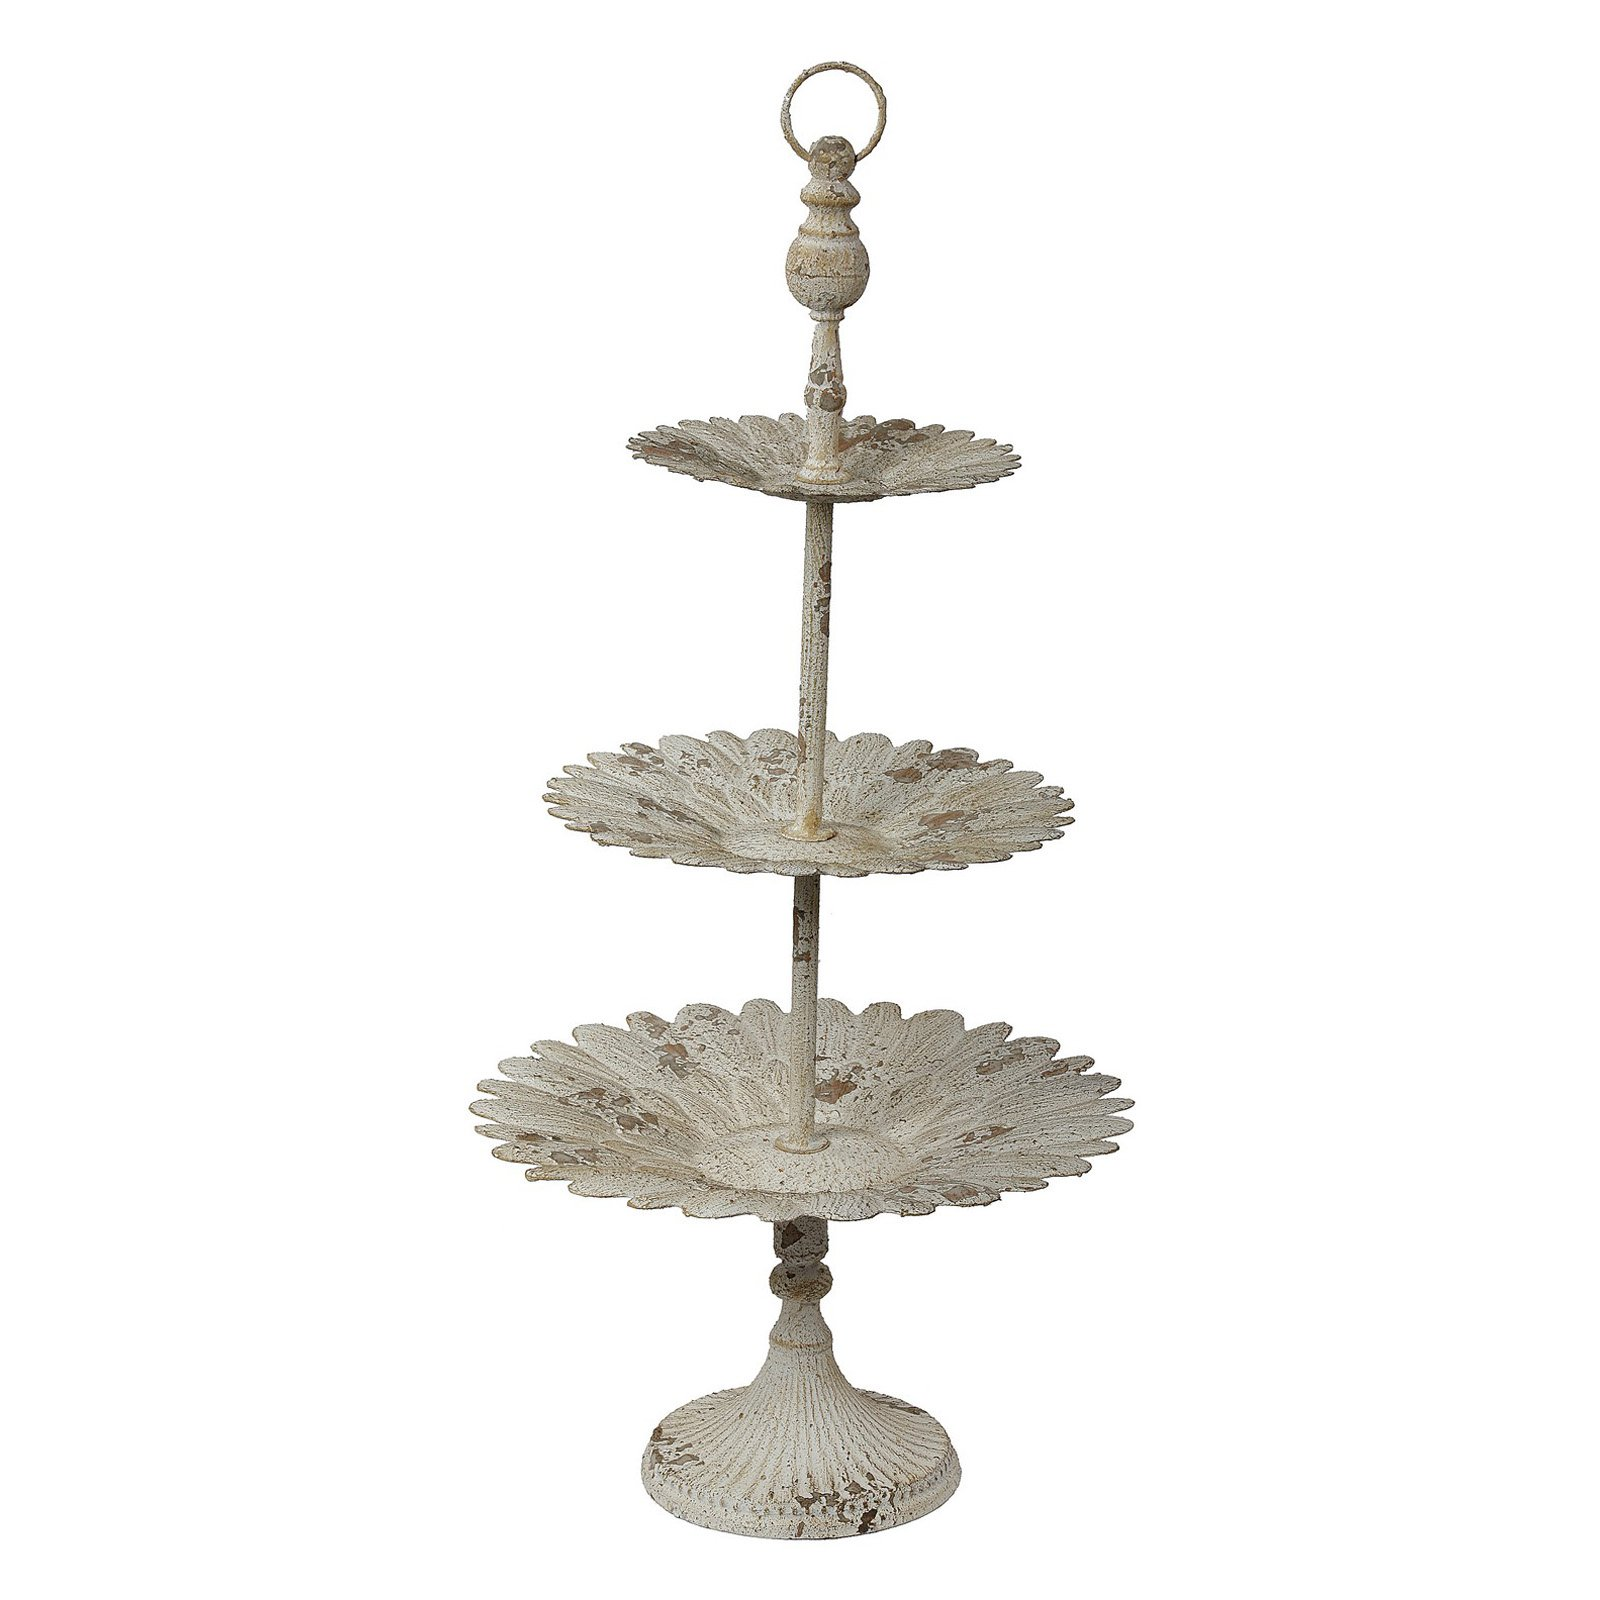 Privilege International Antique White 3 Tier Plate Stand  sc 1 st  Walmart.com & Privilege International Antique White 3 Tier Plate Stand - Walmart.com